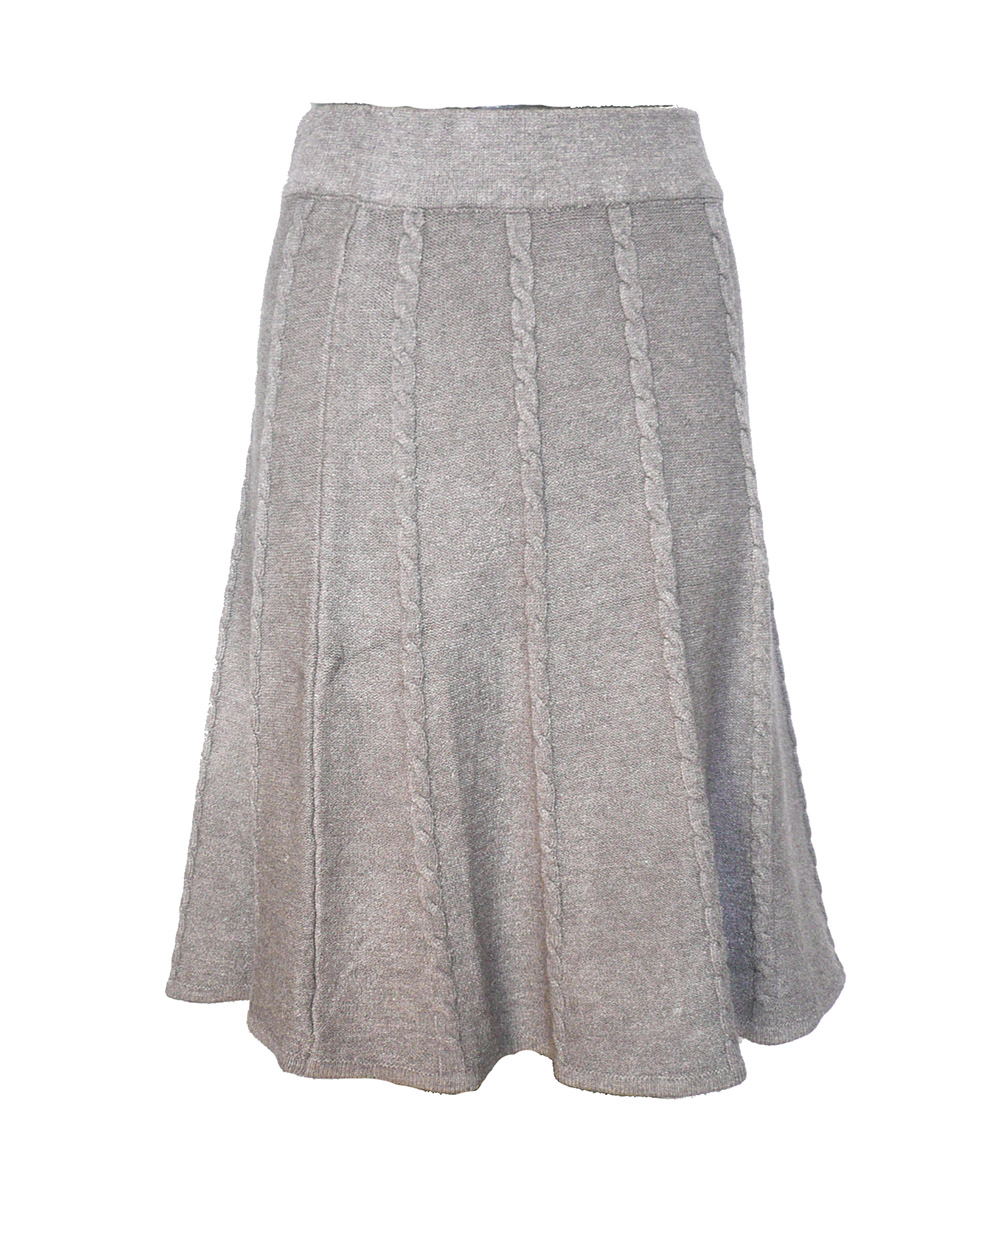 skirt cable knit.jpg